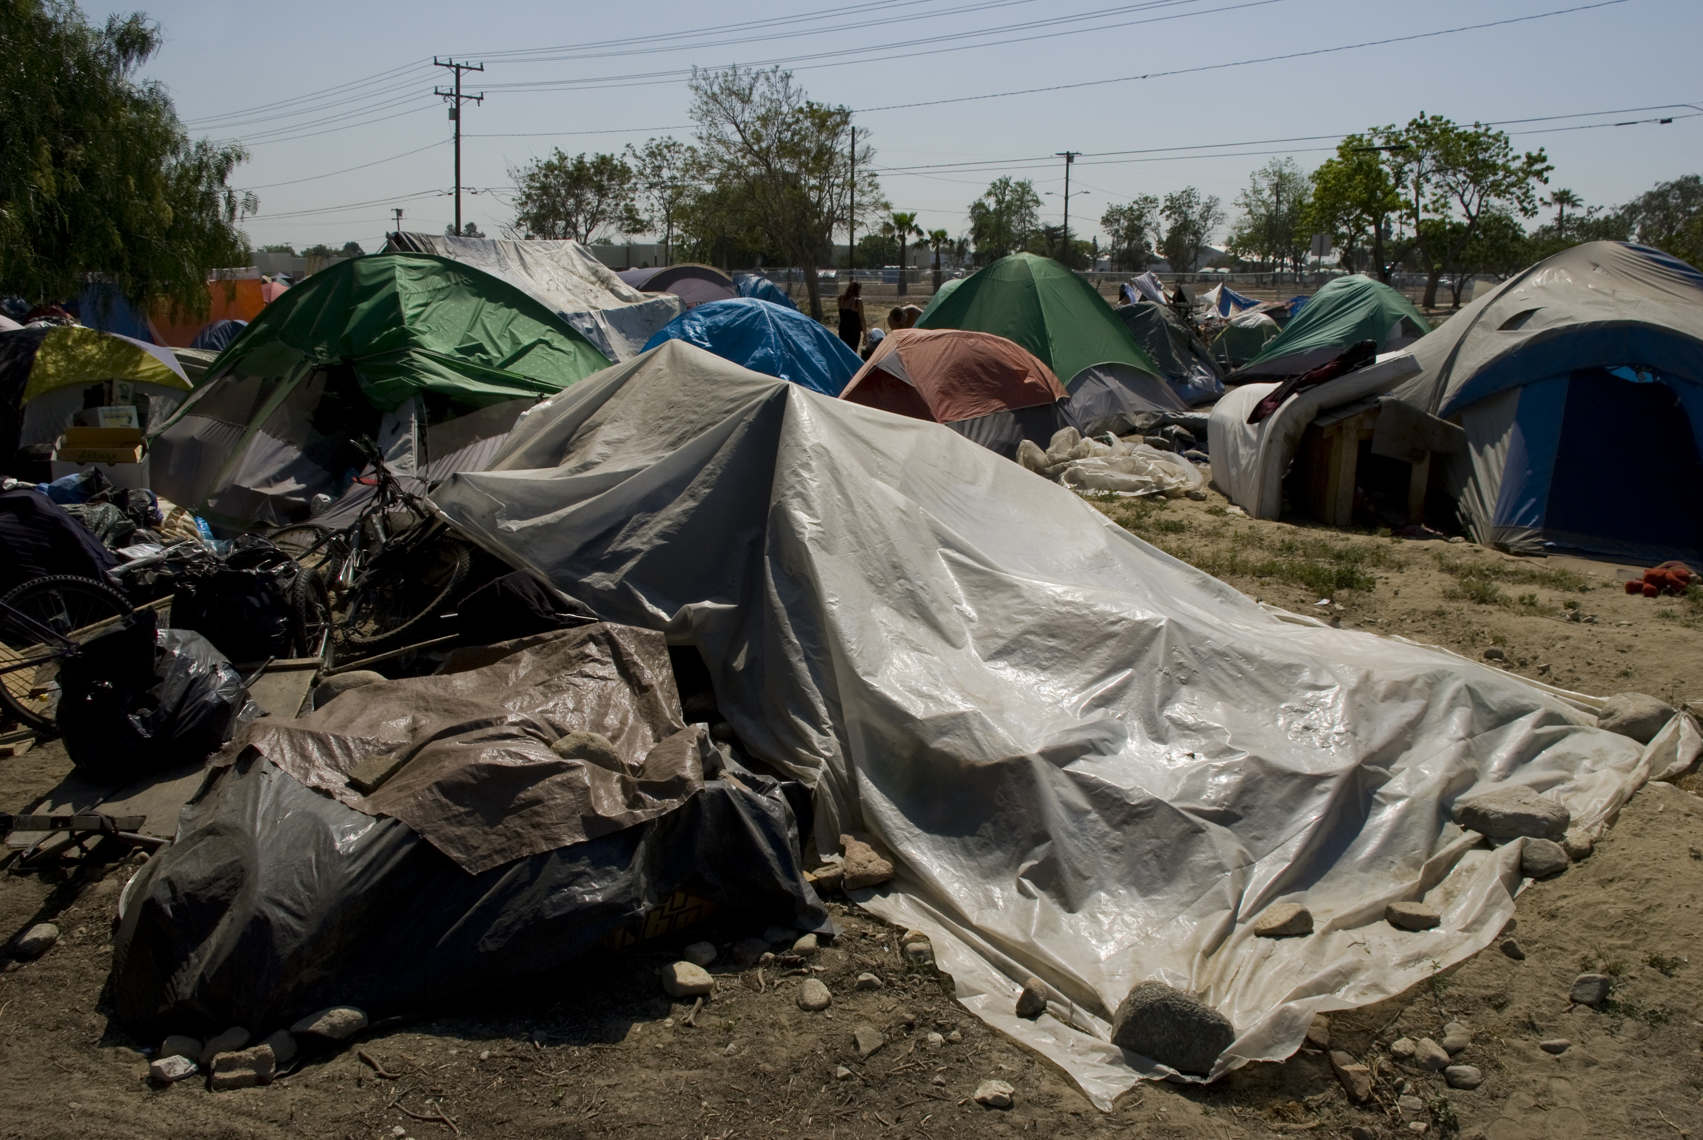 Tent City California 018